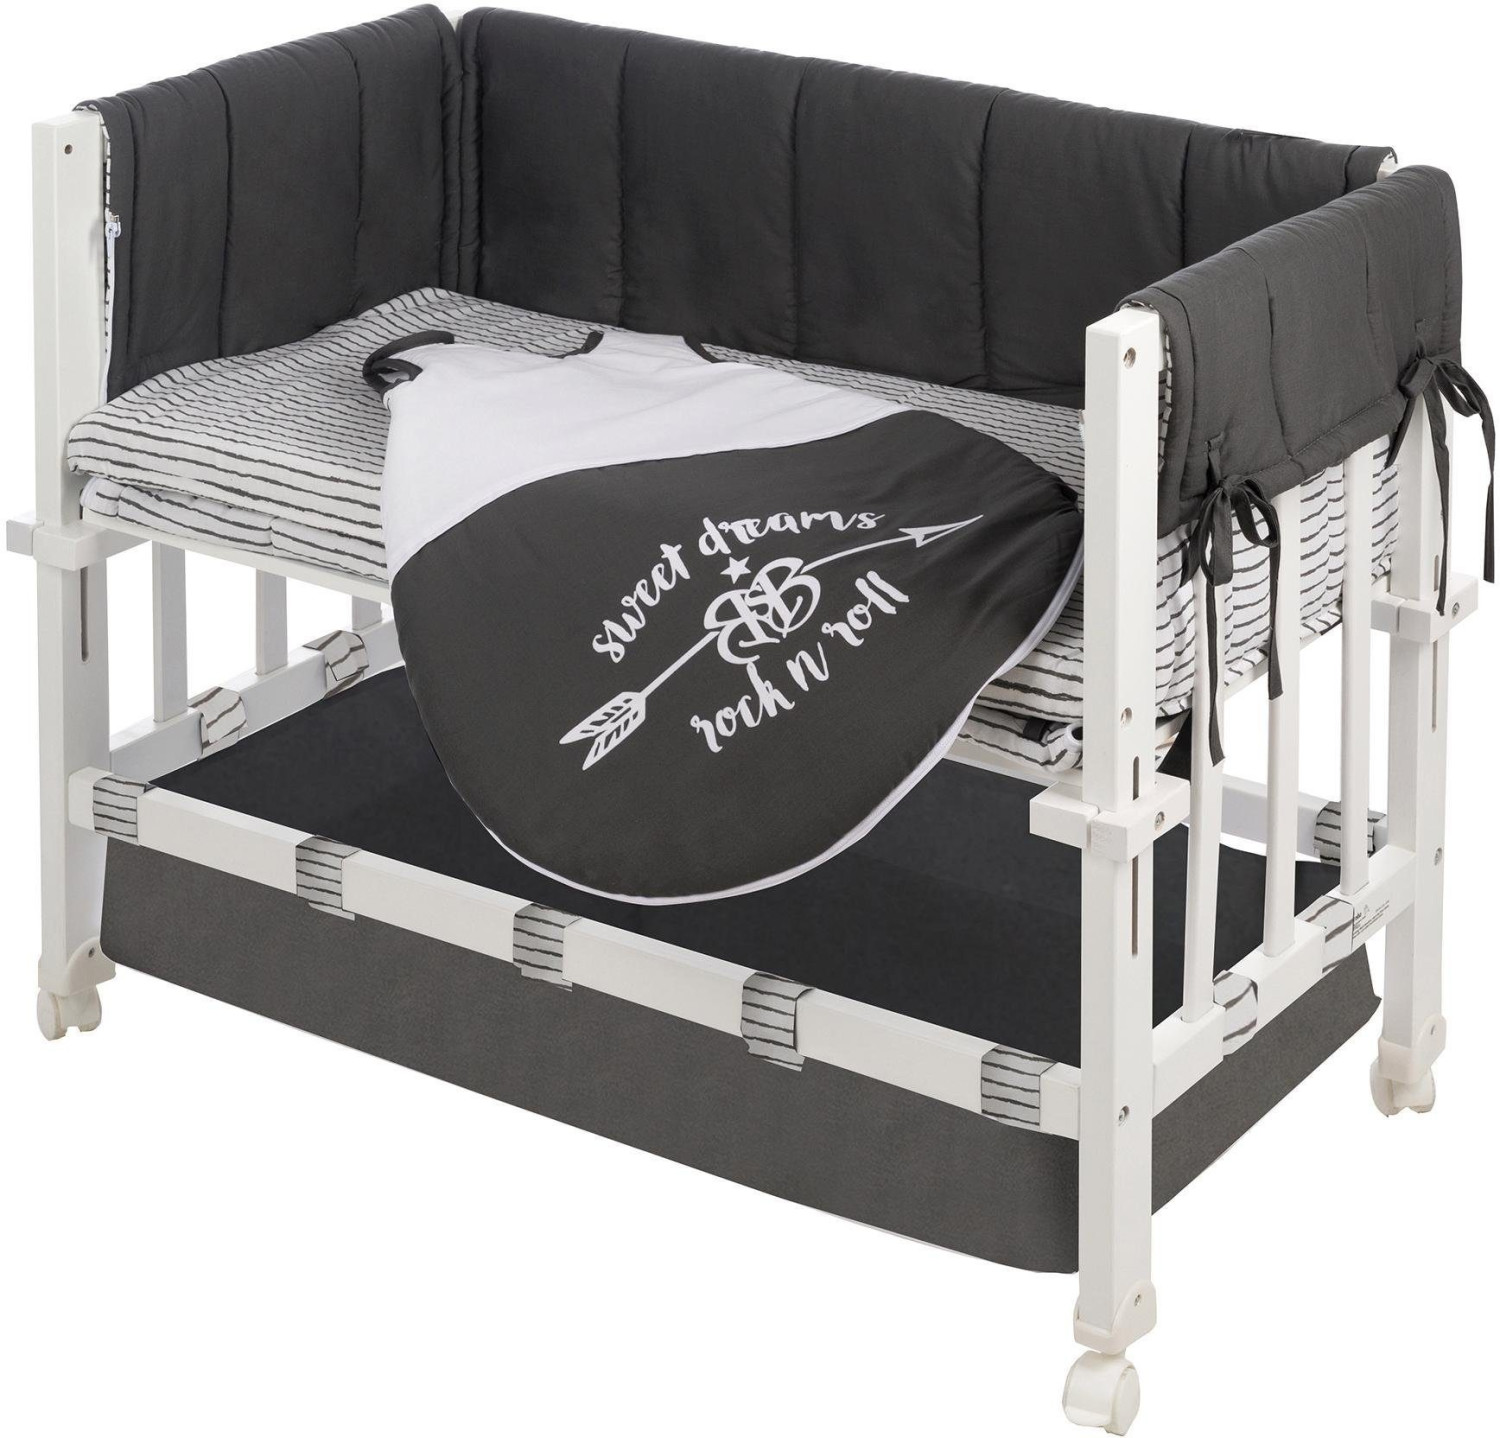 Roba Room Bed 3 in 1 Rock Star Baby